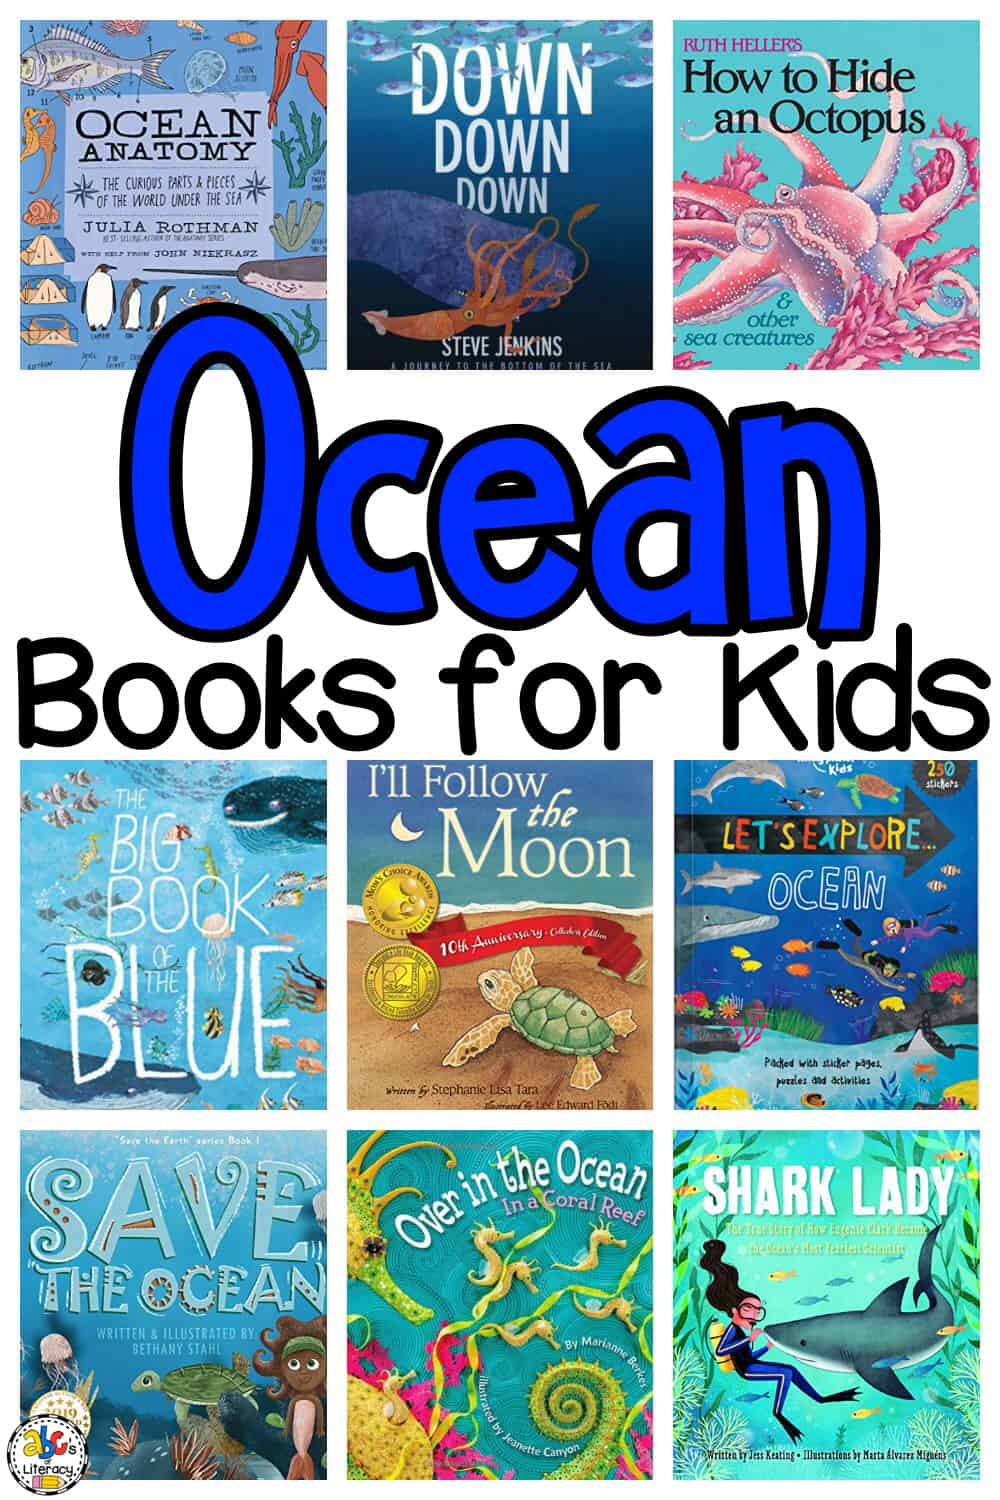 Ocean Picture Books For Kids To Learn About Sea Life